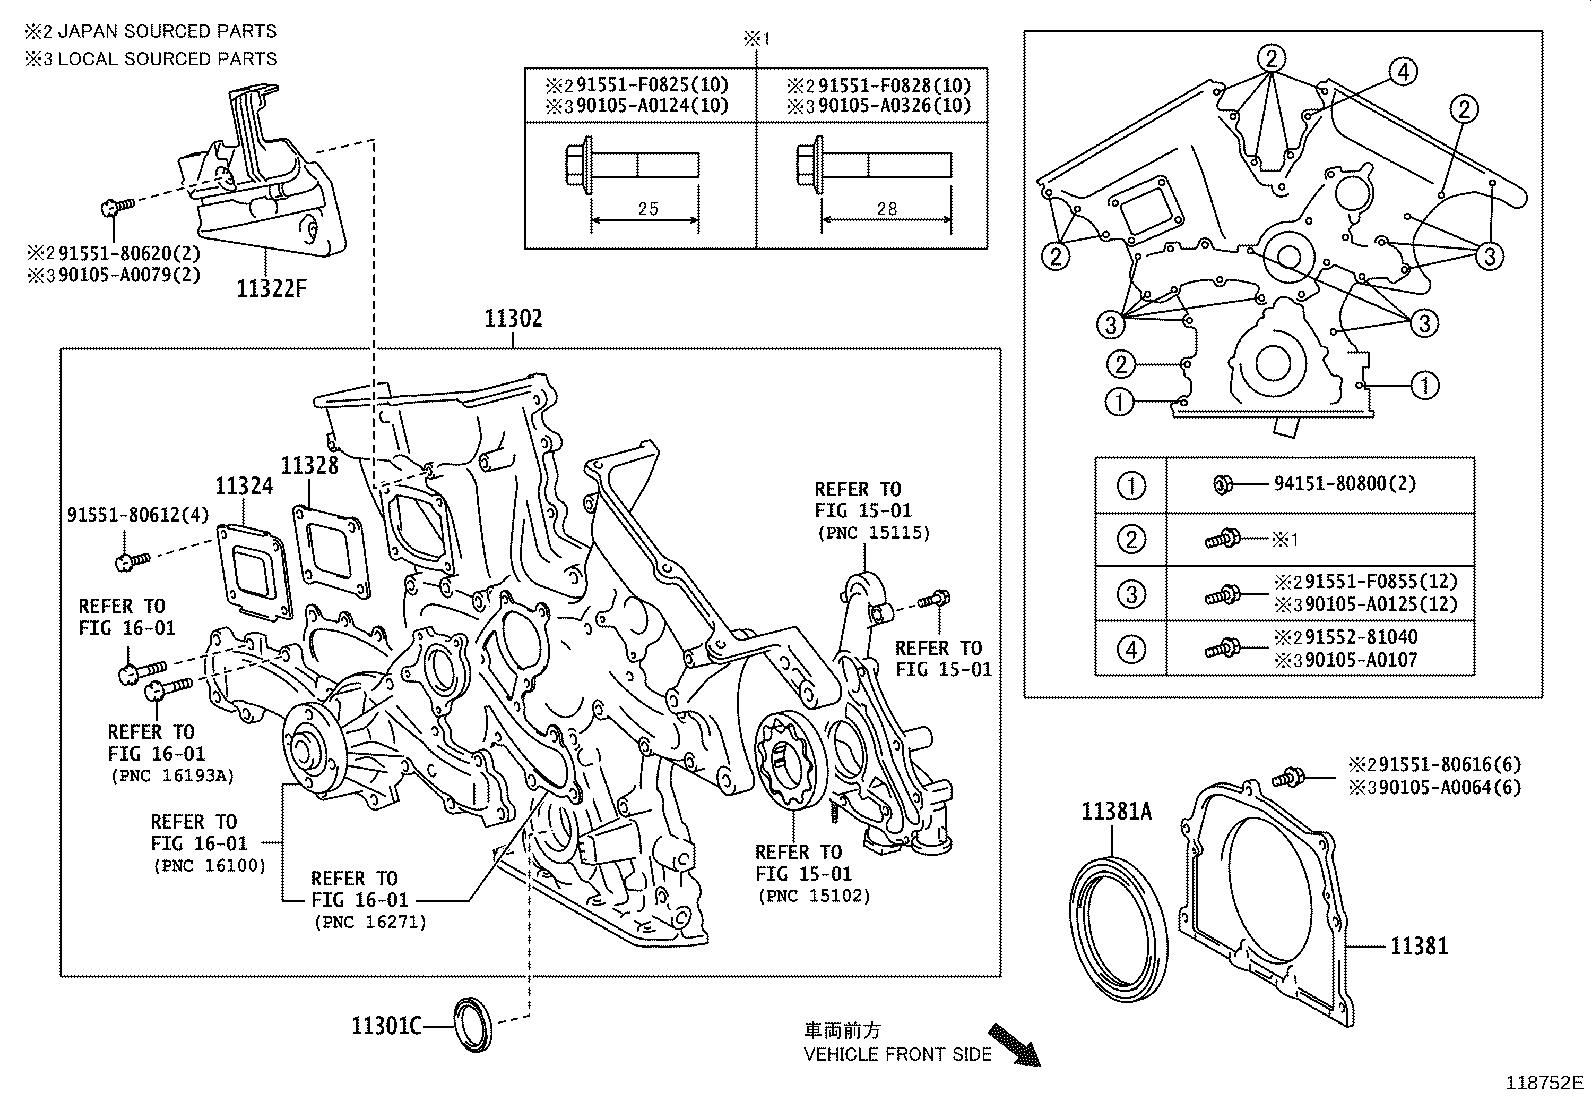 Diagram Toyota Highlander Engine Diagram Full